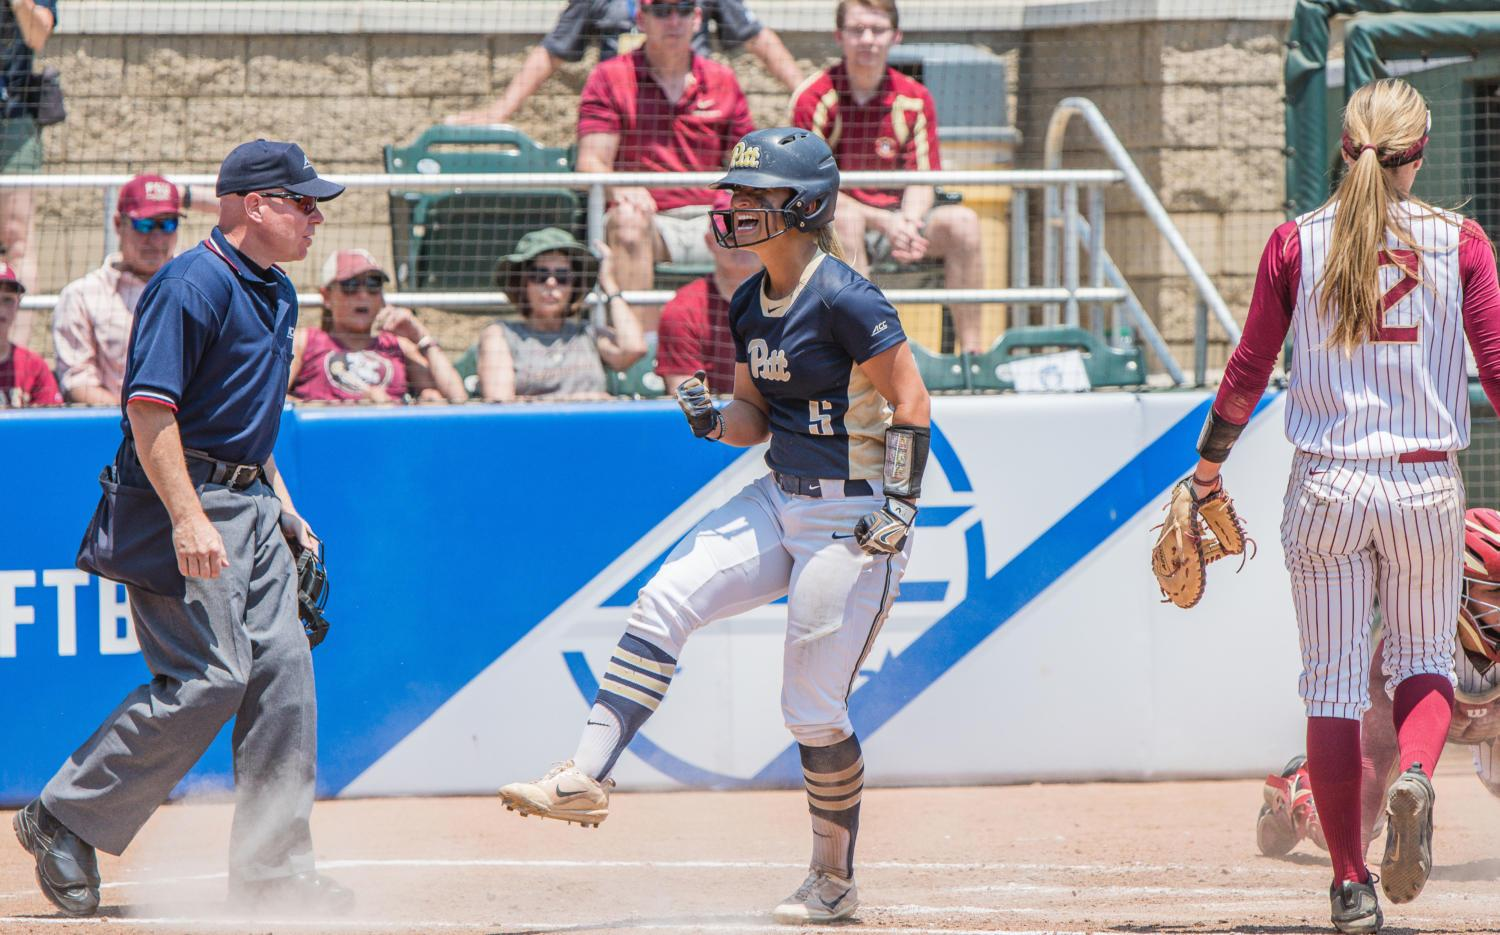 Pitt Softball player Hunter Levesque celebrates the Panthers' success during their victory against Virginia Tech in the 2018 ACC Softball Tournament. (Photo courtesy of Delvin Jones)